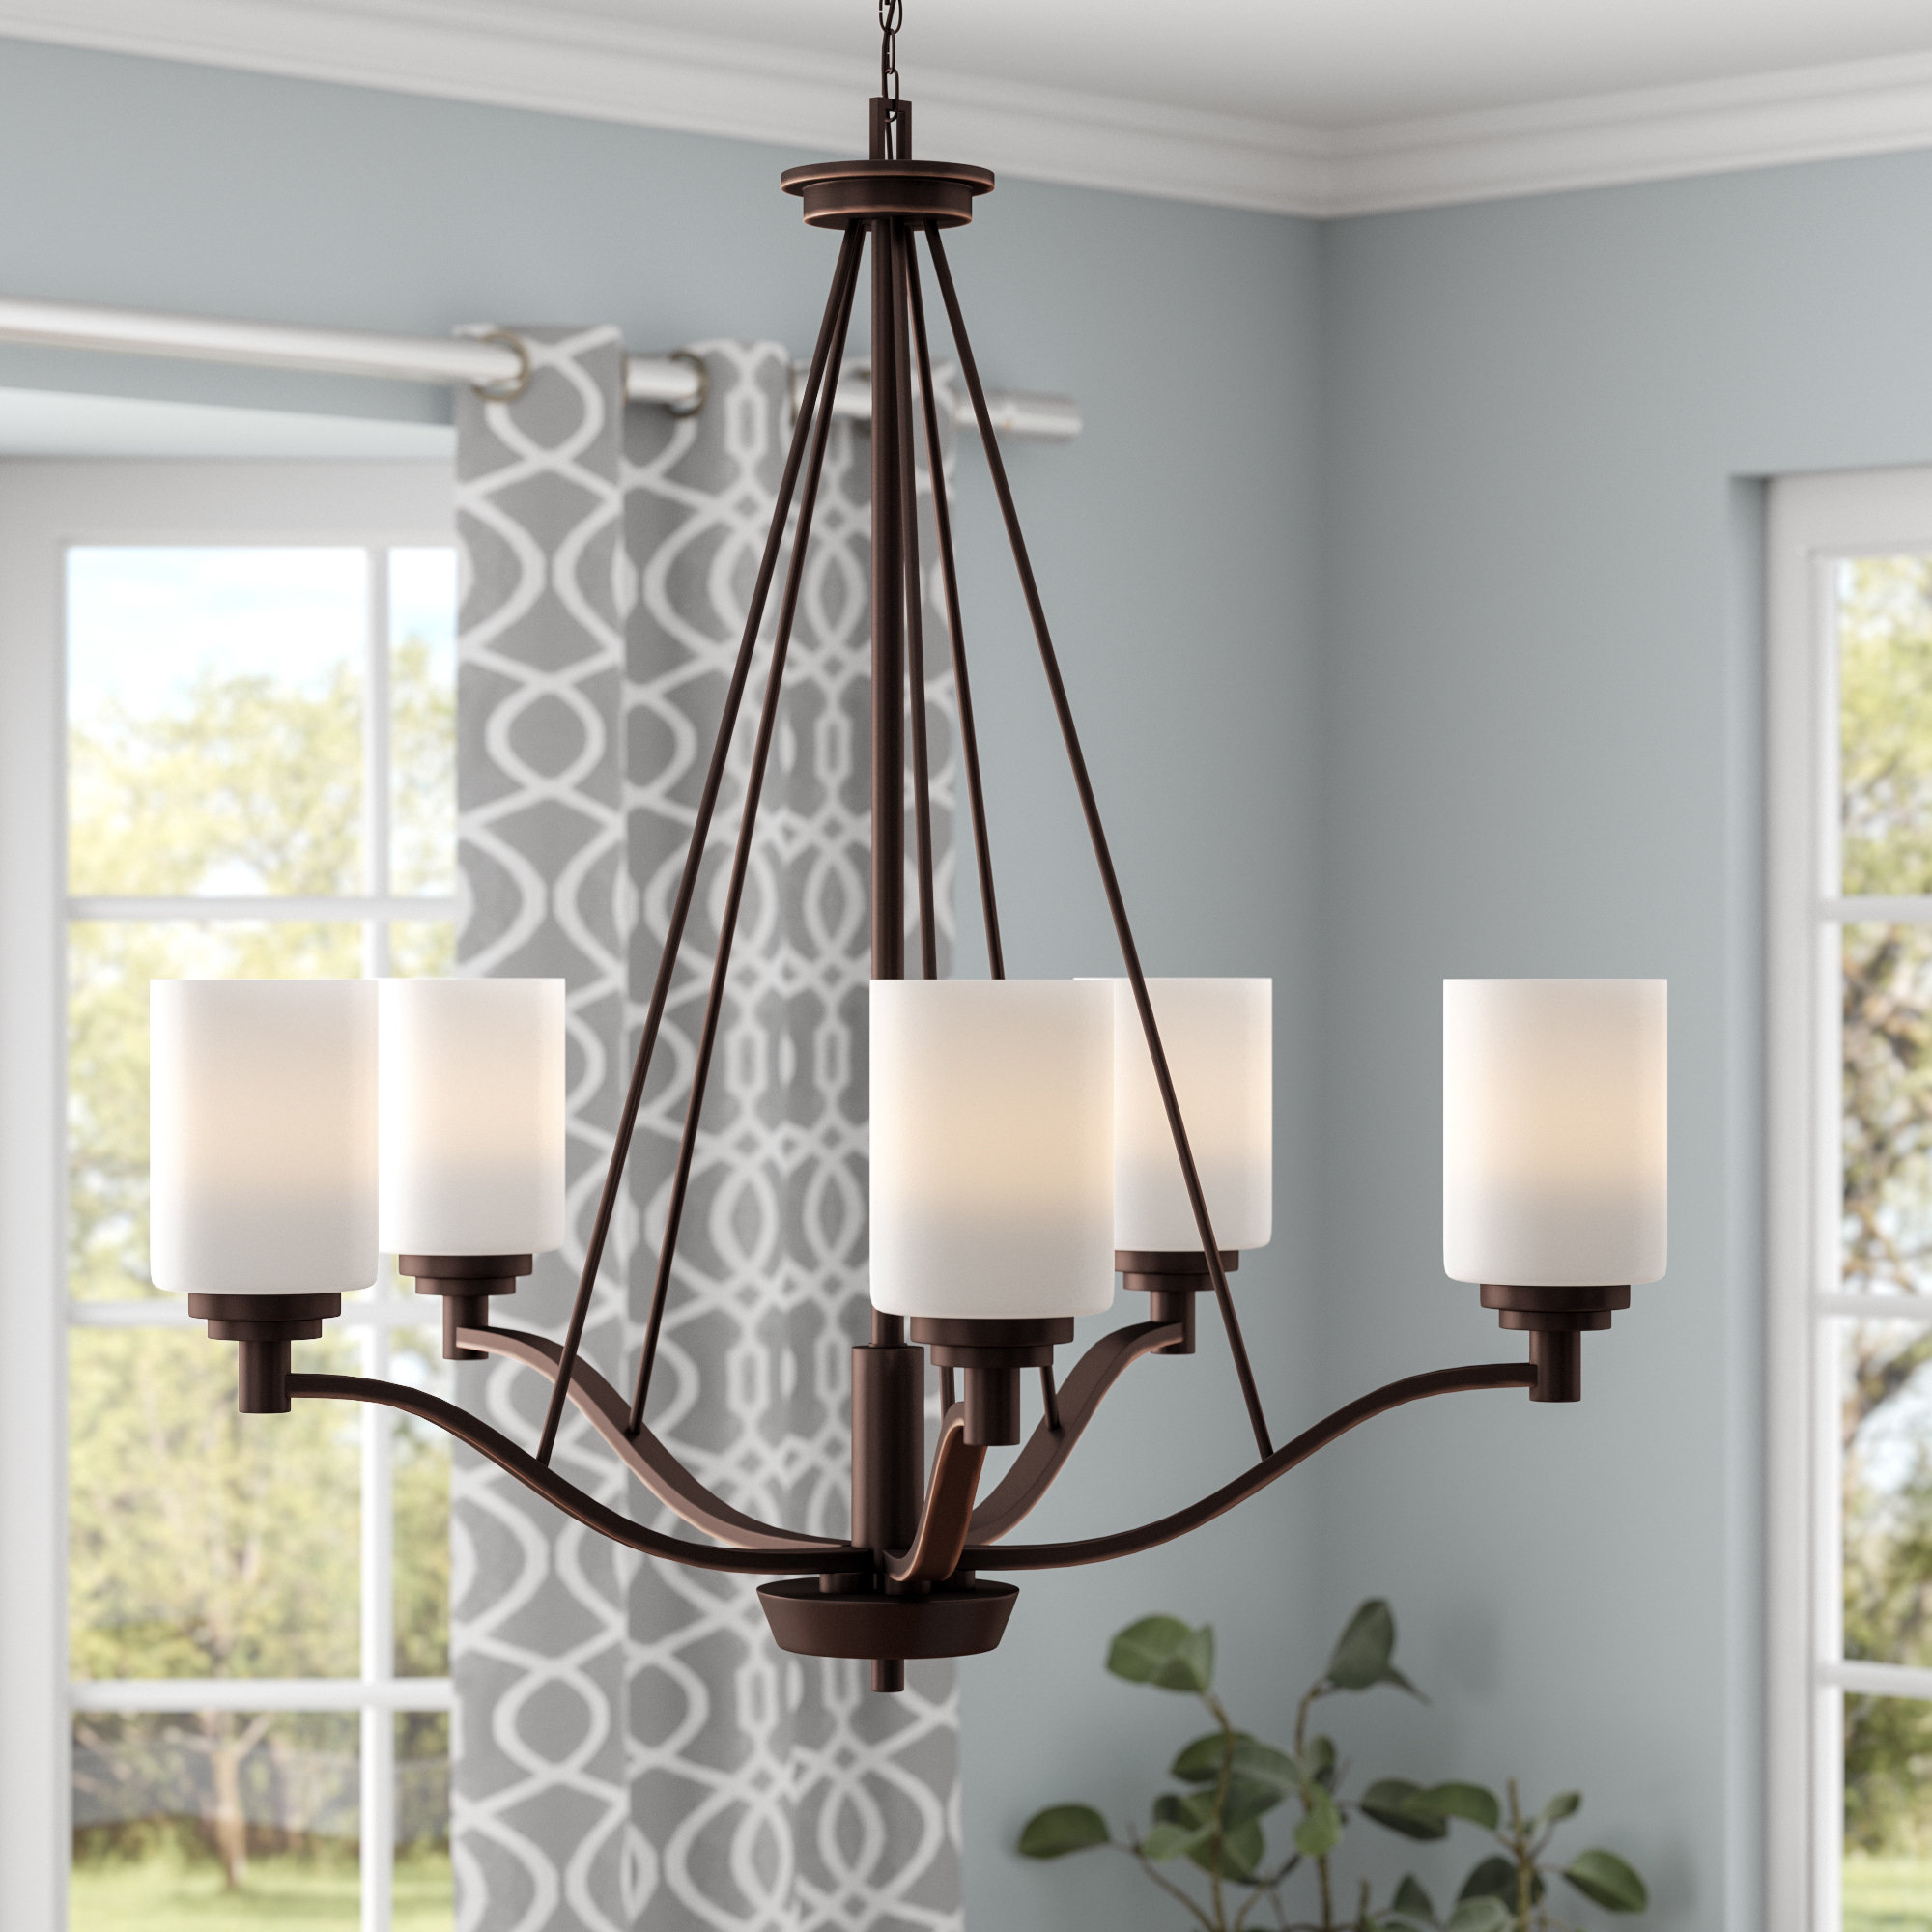 Most Recently Released Hester 5 Light Shaded Chandelier Pertaining To Suki 5 Light Shaded Chandeliers (View 6 of 20)